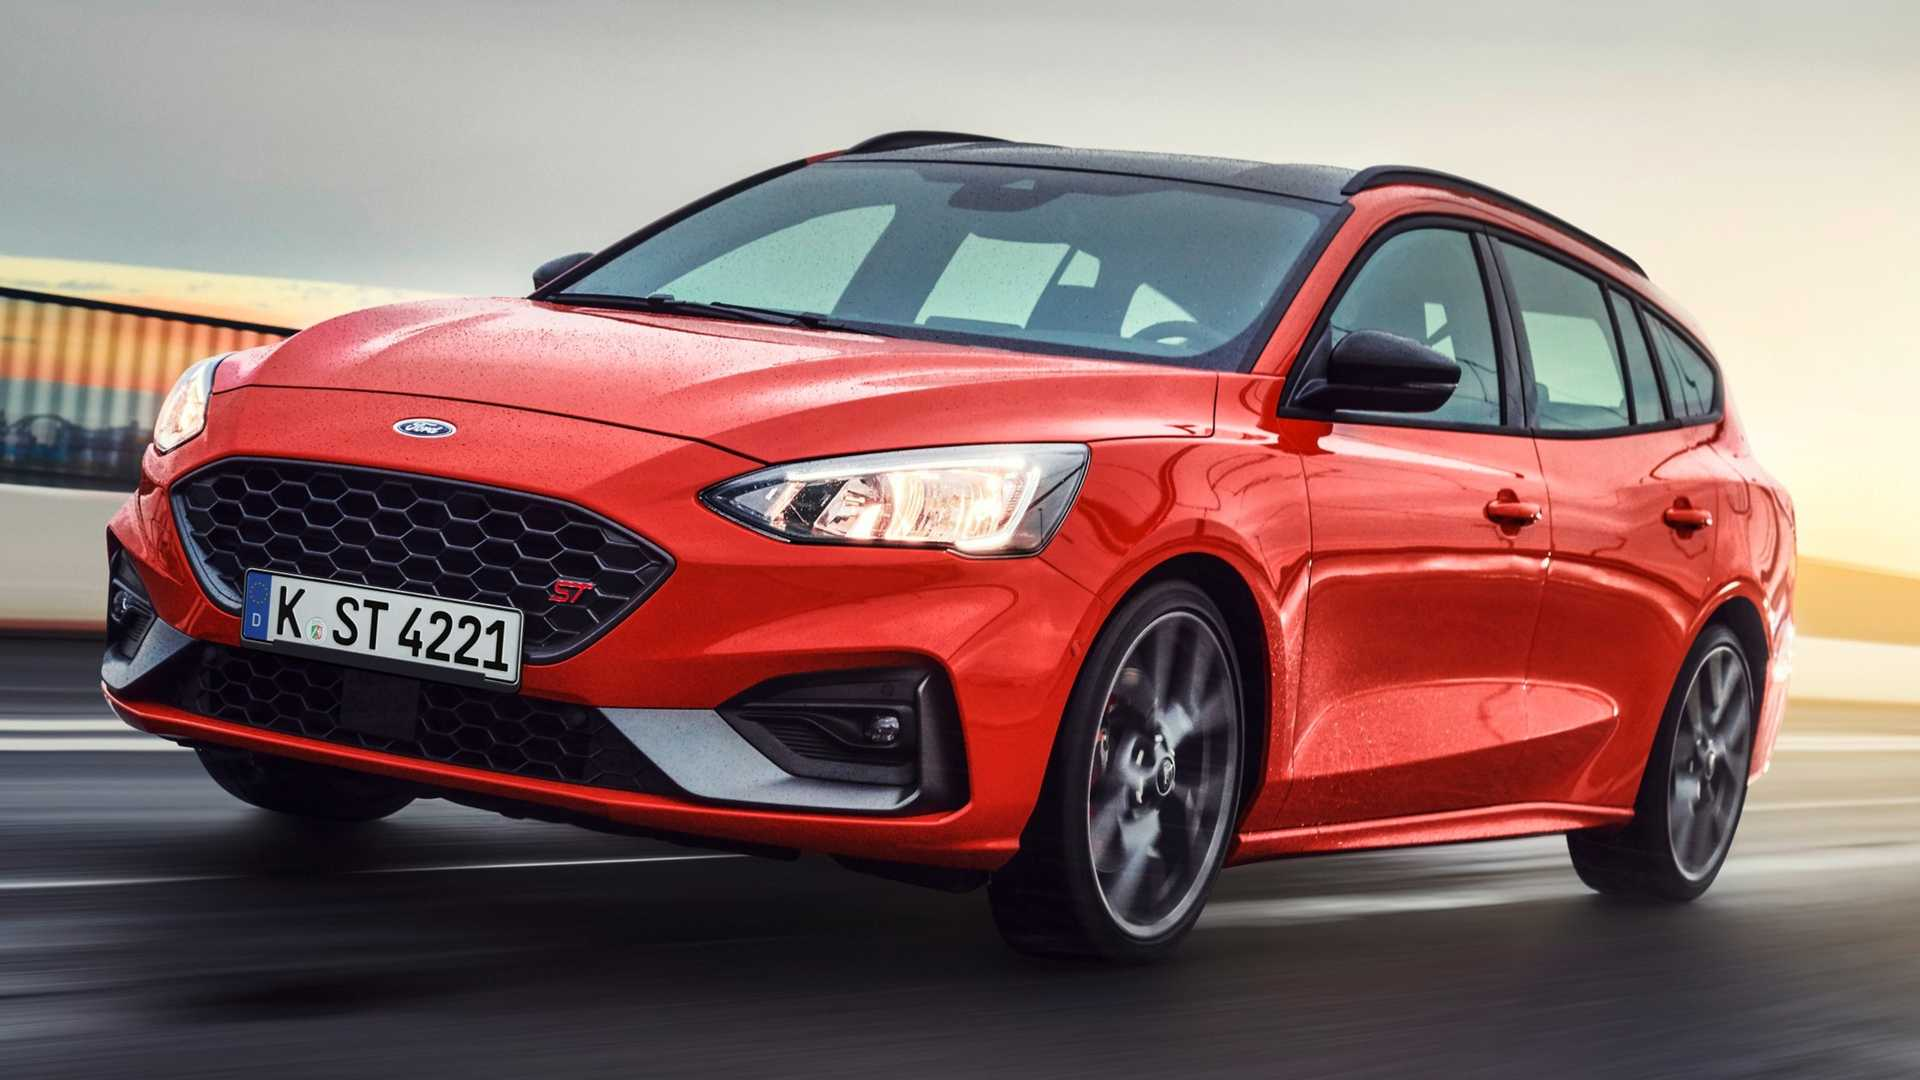 The fourth generation of the Ford Focus ST is available in two body styles: hatchback and estate/wagon, with the latter only just coming to the market. Let us see what it has in stock